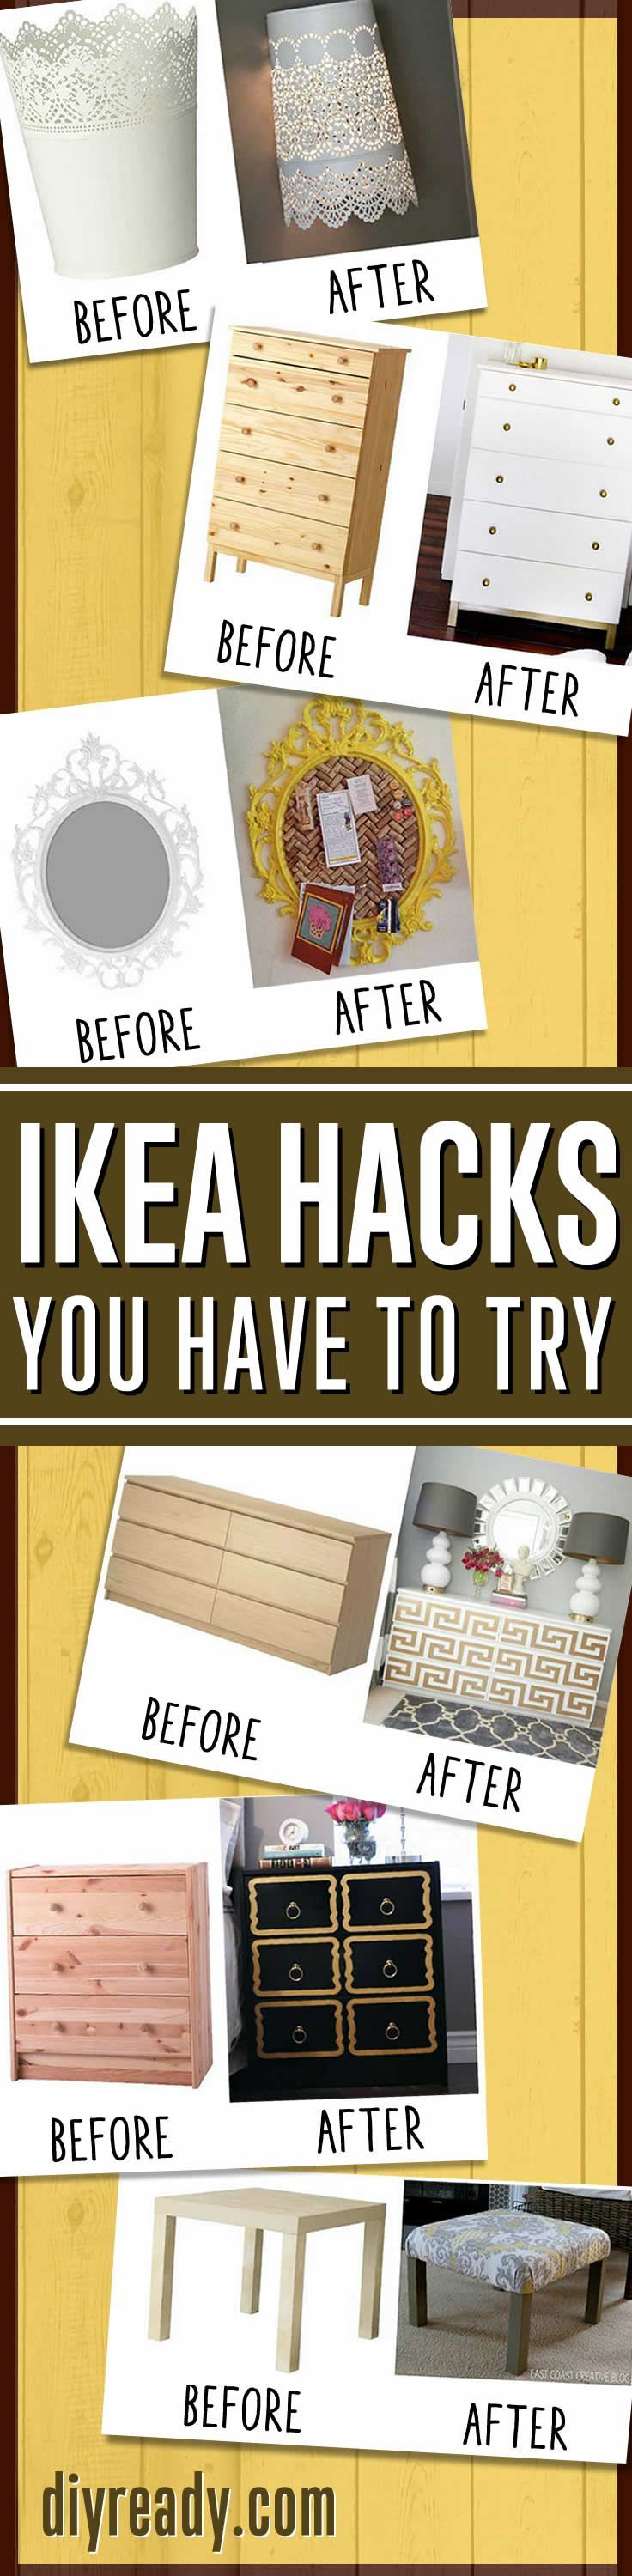 japanese fashion shop in singapore DIY Home Decor Ideas   IKEA Hacks Awesome Home Decor On A Budget By DIY Ready  http   diyready com 15 amazing ikea hacks